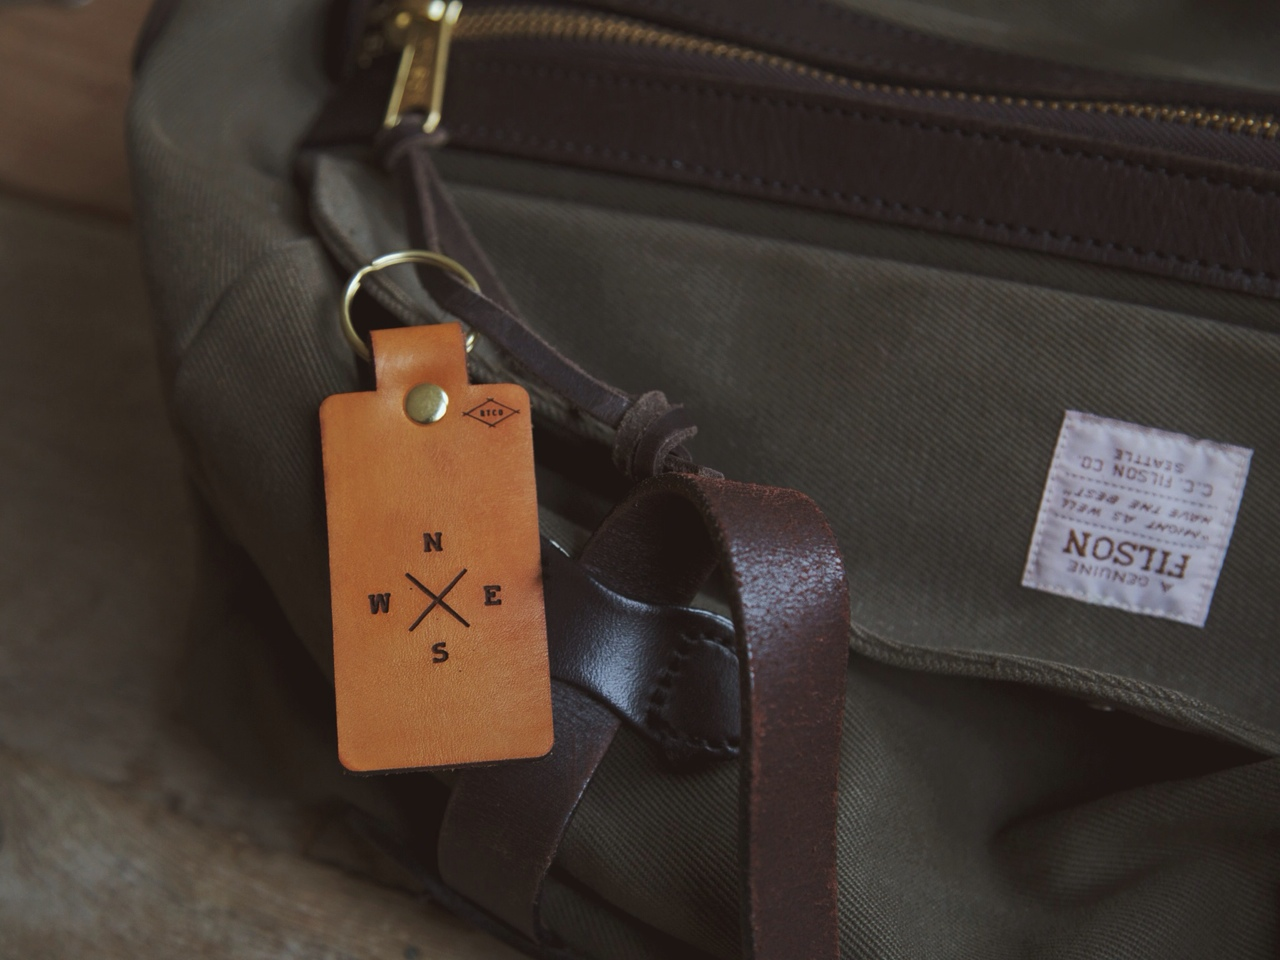 We've been traveling a lot lately testing out our new Veggie Tanned Leather Luggage Tags… Anthony is happy to see they are already starting to wear as nicely as his Filson bags.